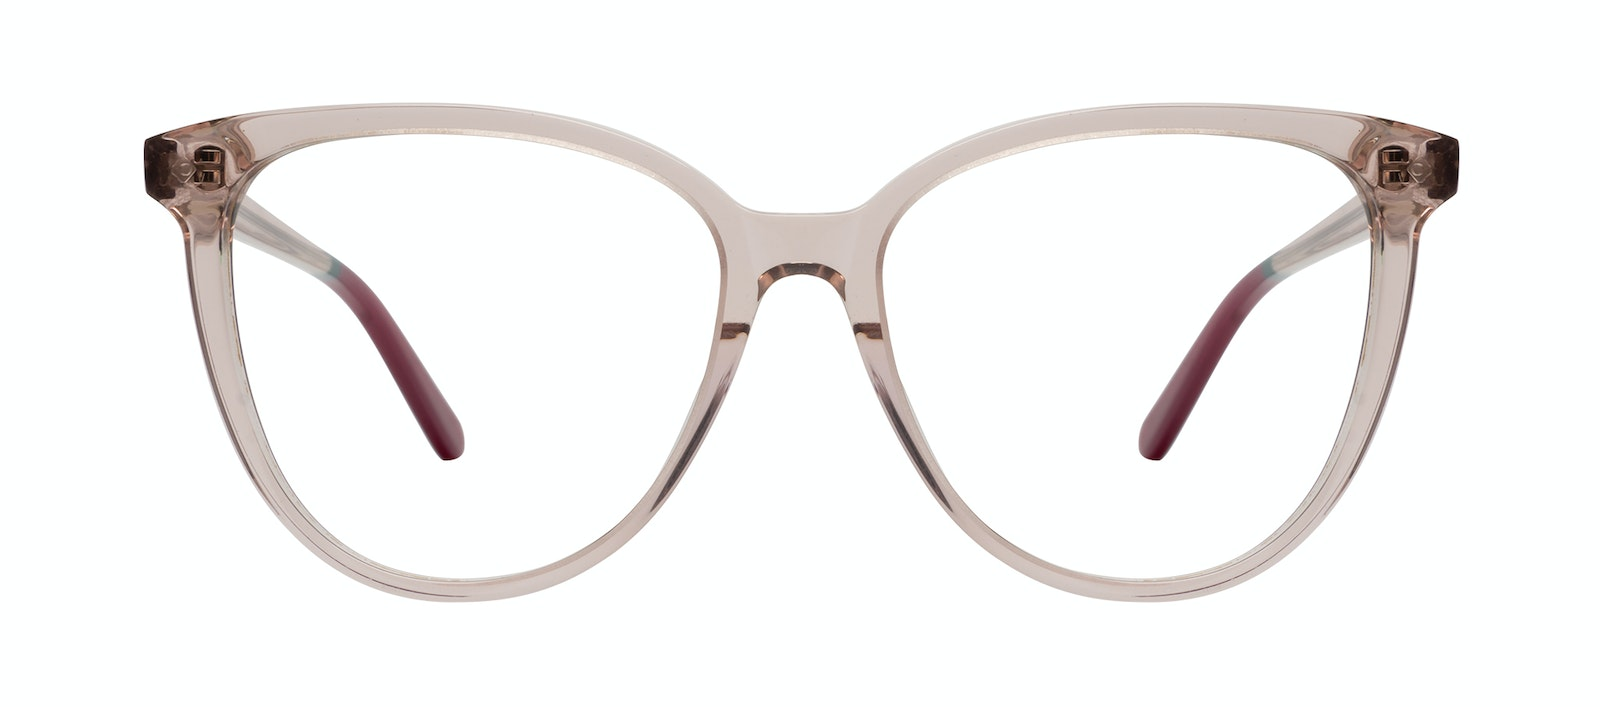 Affordable Fashion Glasses Eyeglasses Women Jane Rose Front